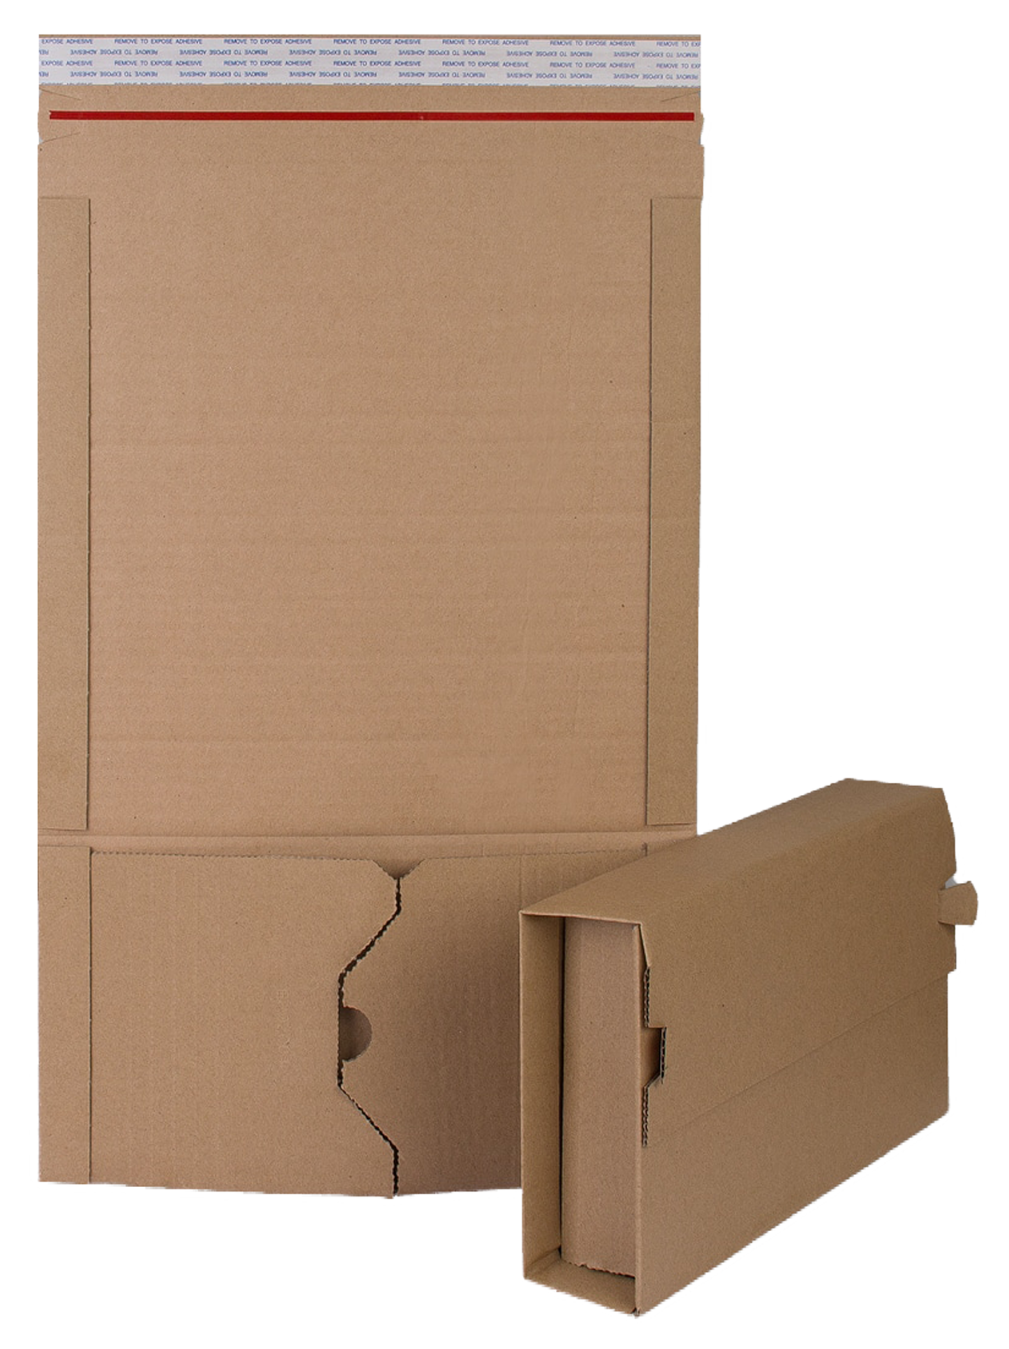 C3 Book Wrap Mailer Box 311x240x50mm